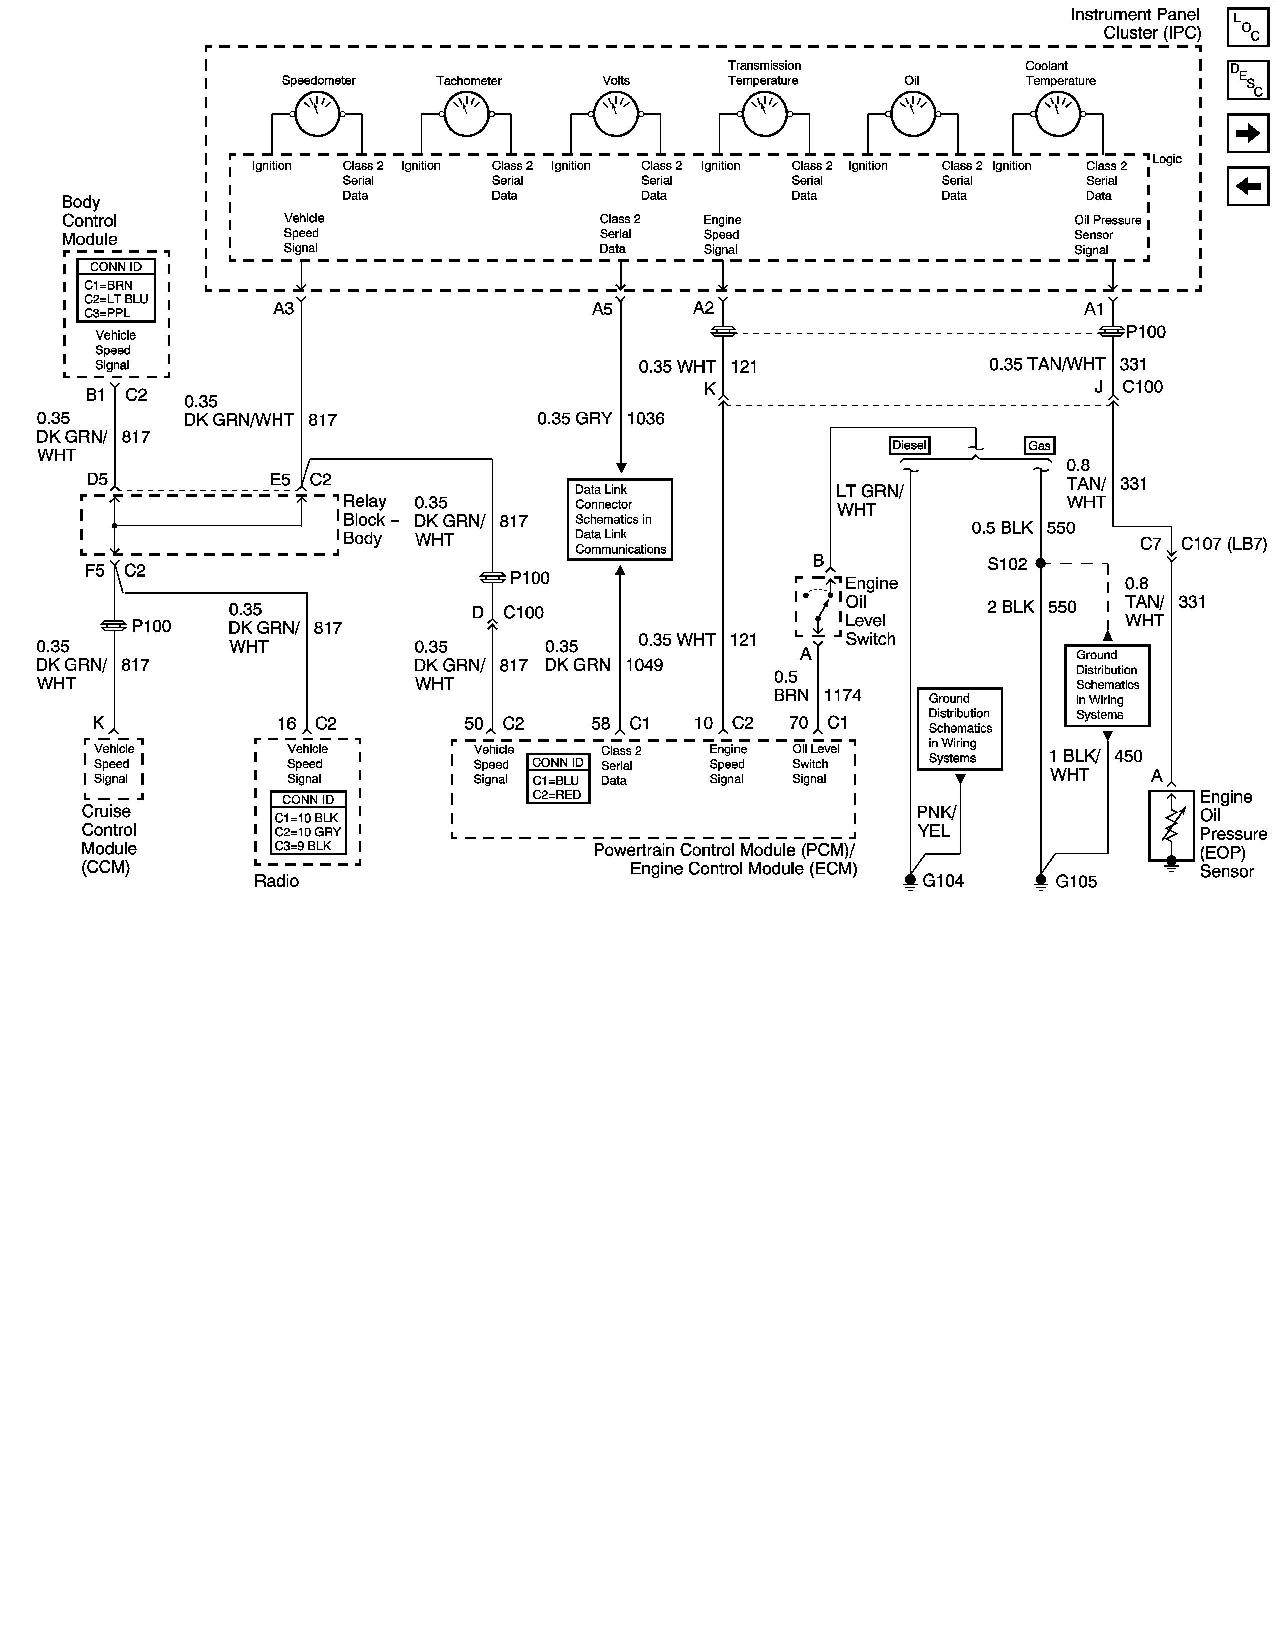 2 wire pressure transducer wiring diagram cutler hammer 3 phase starter ls1 oil level sensor for swap clarification